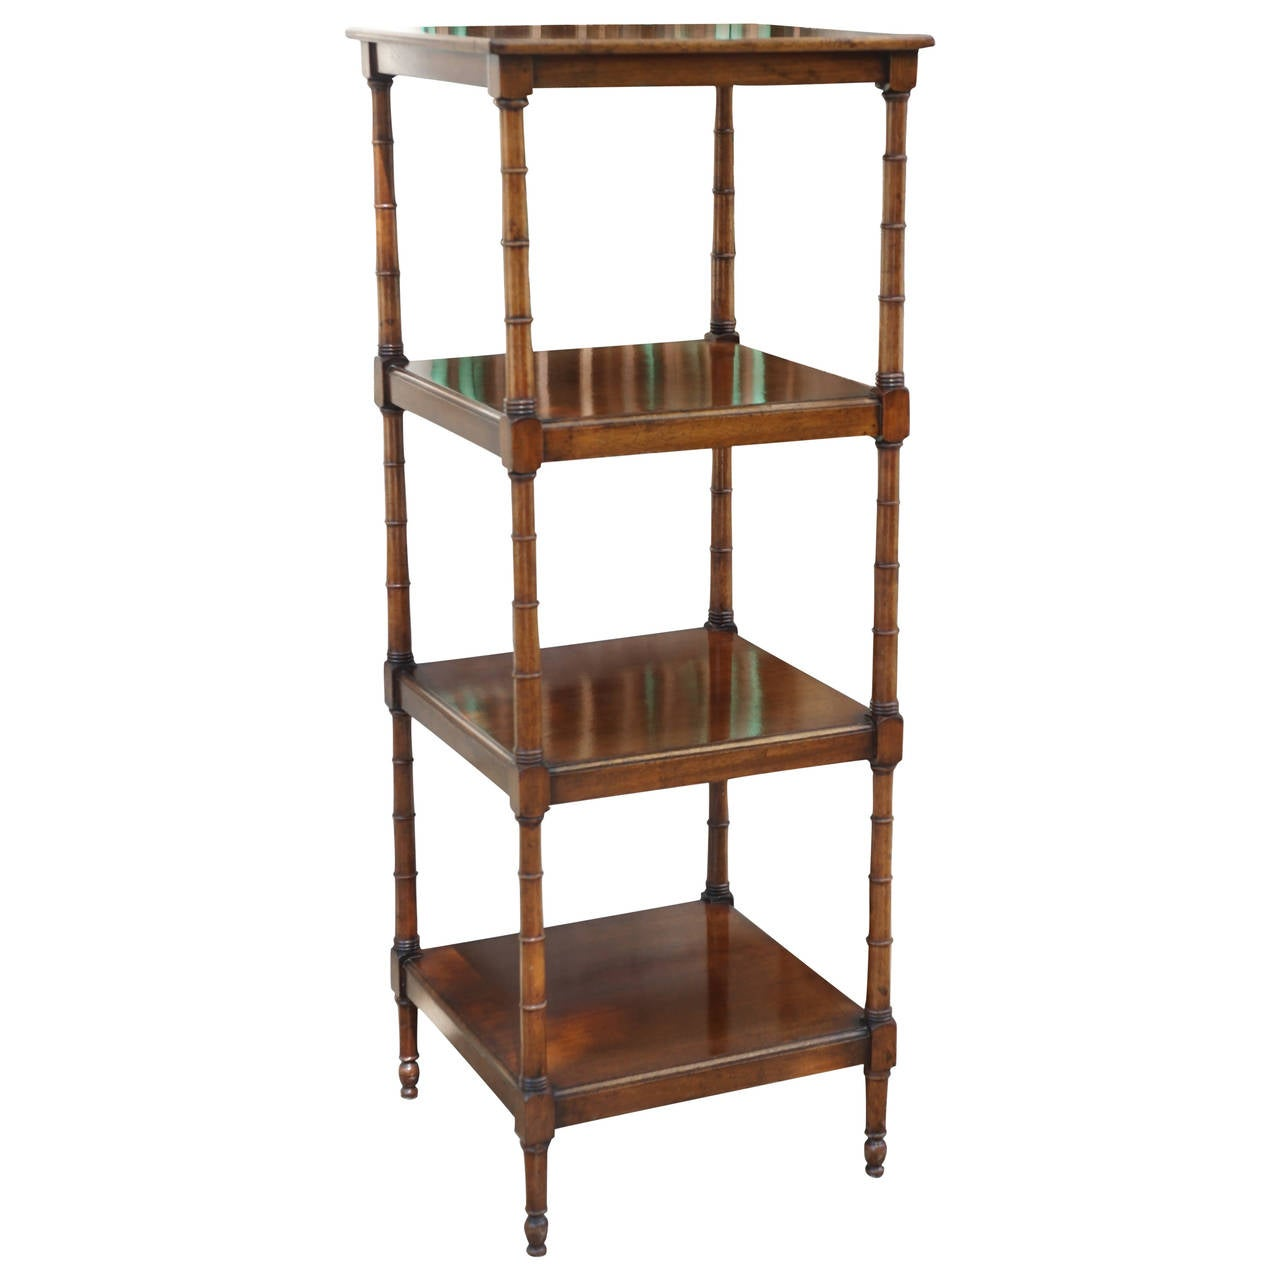 english edwardian mahogany four shelf etagere for sale at 1stdibs. Black Bedroom Furniture Sets. Home Design Ideas